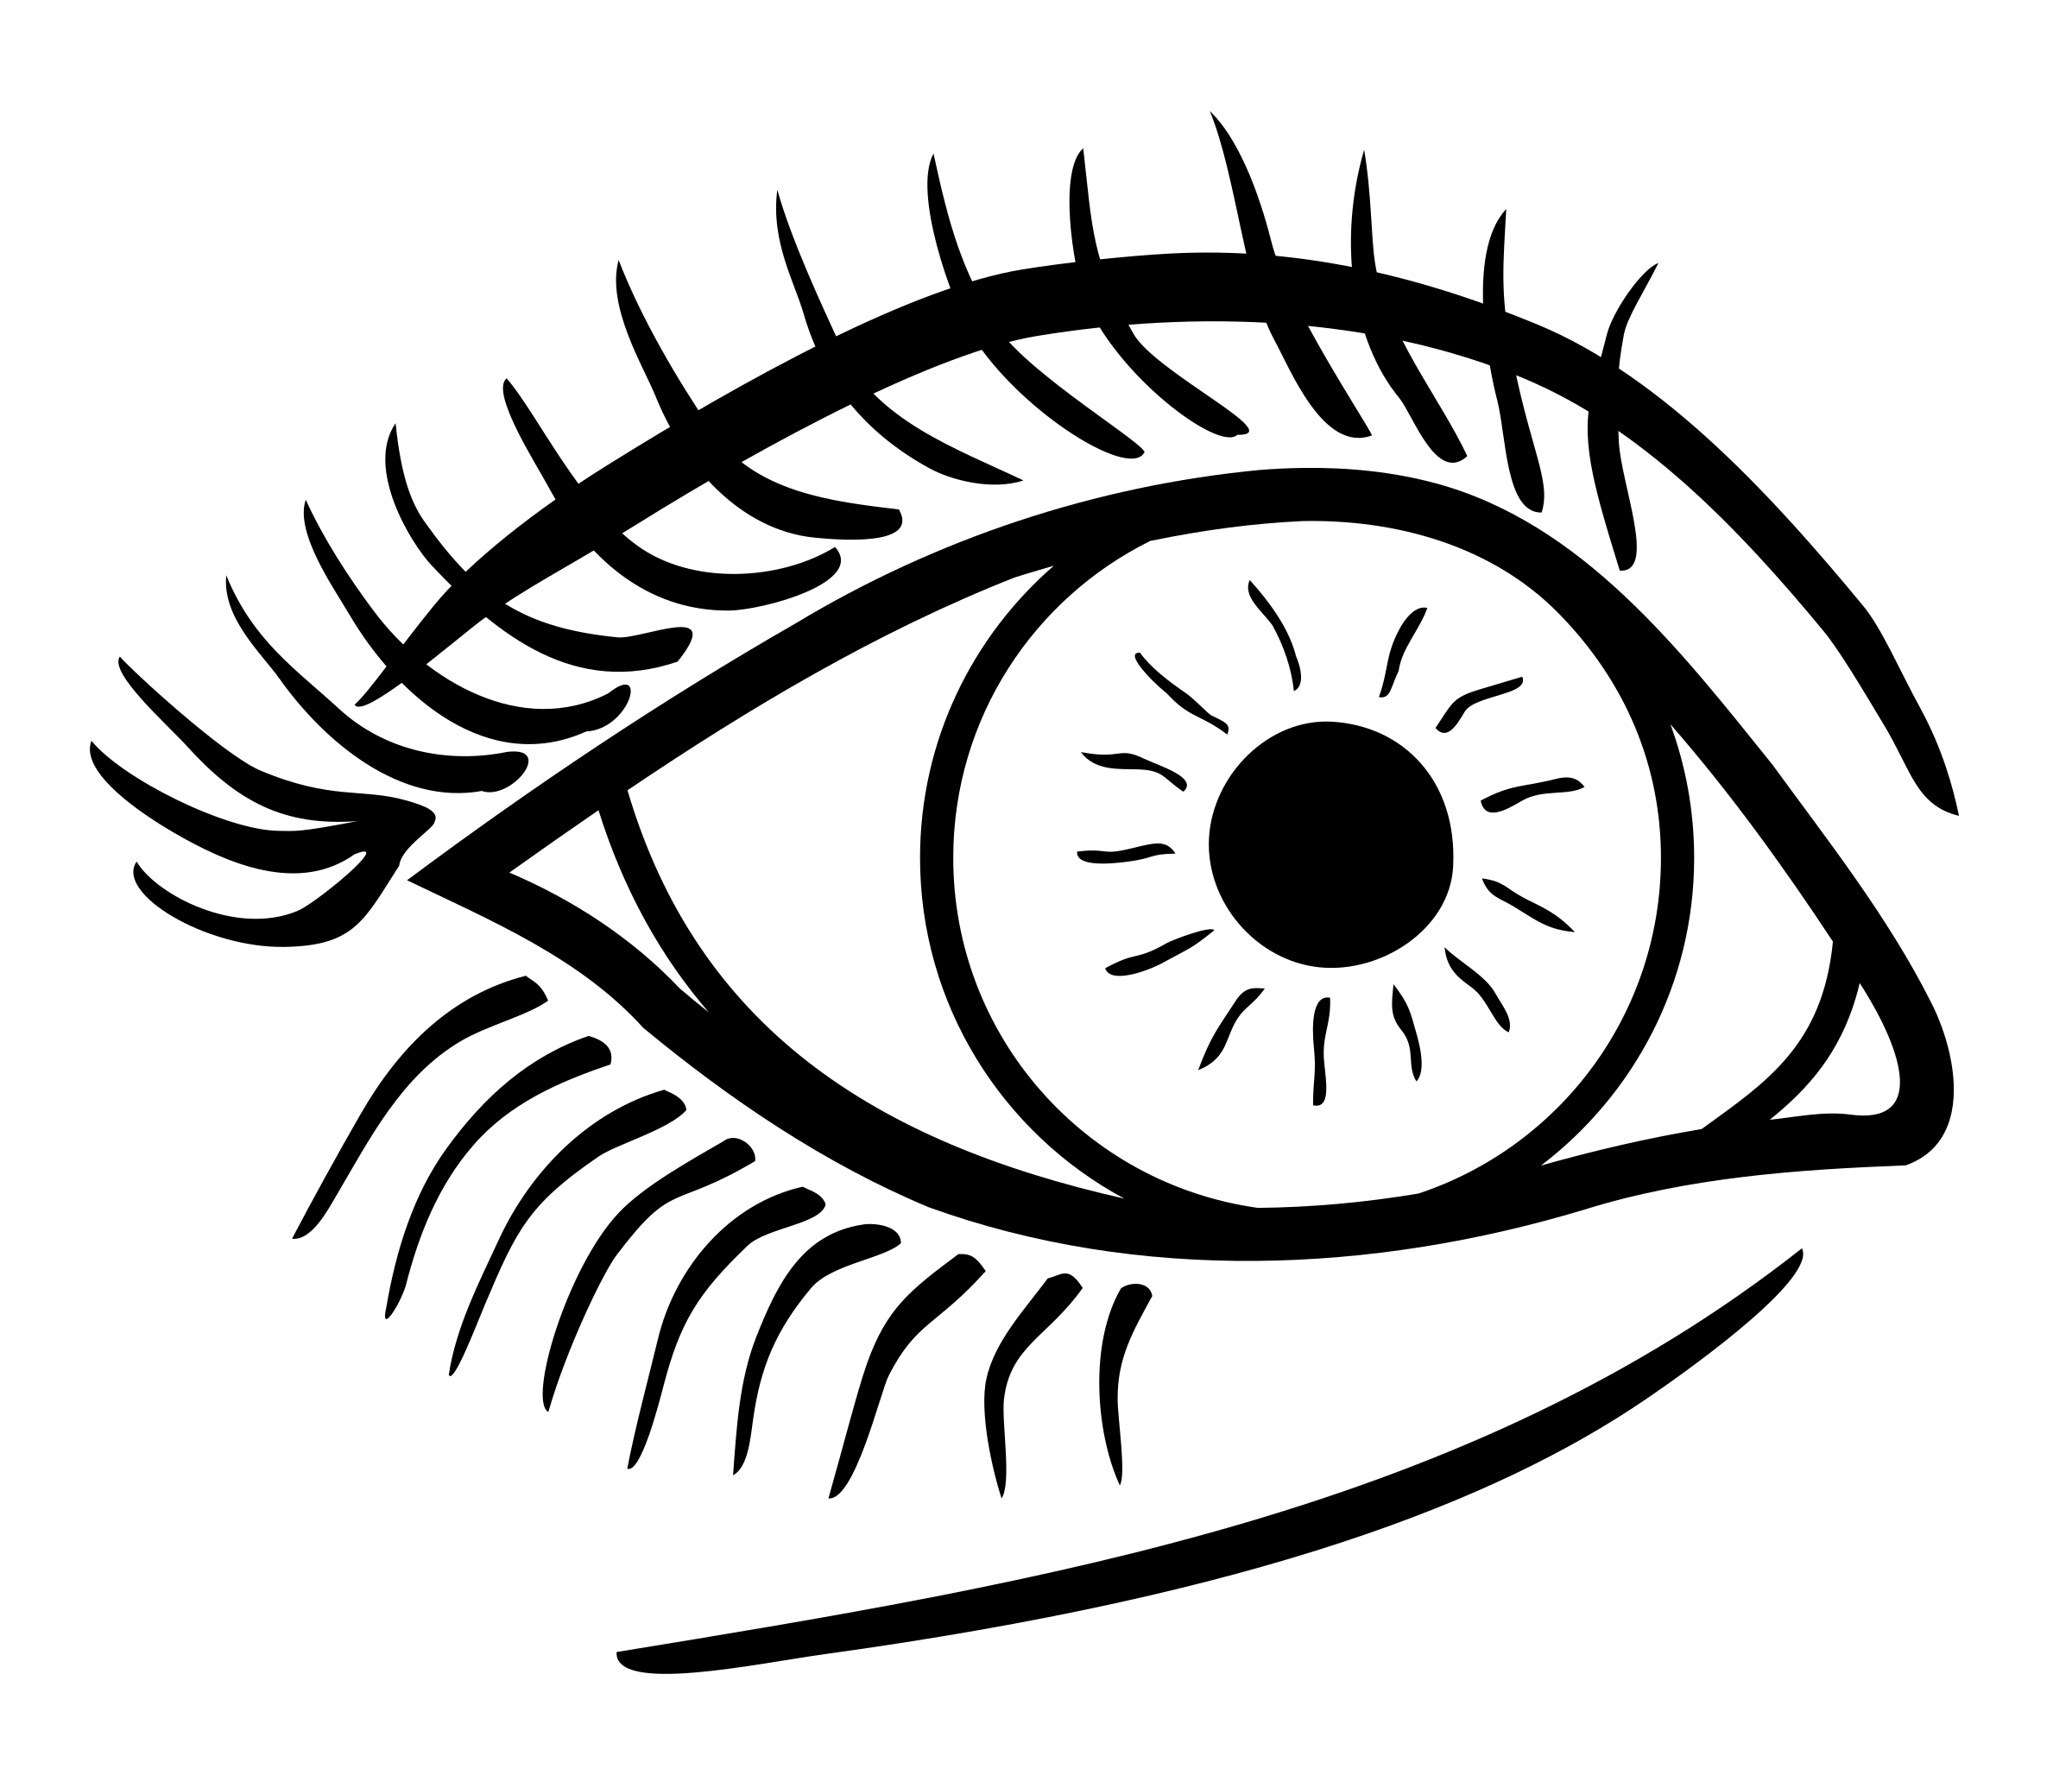 Line Art Eye : Clipart eye lineart